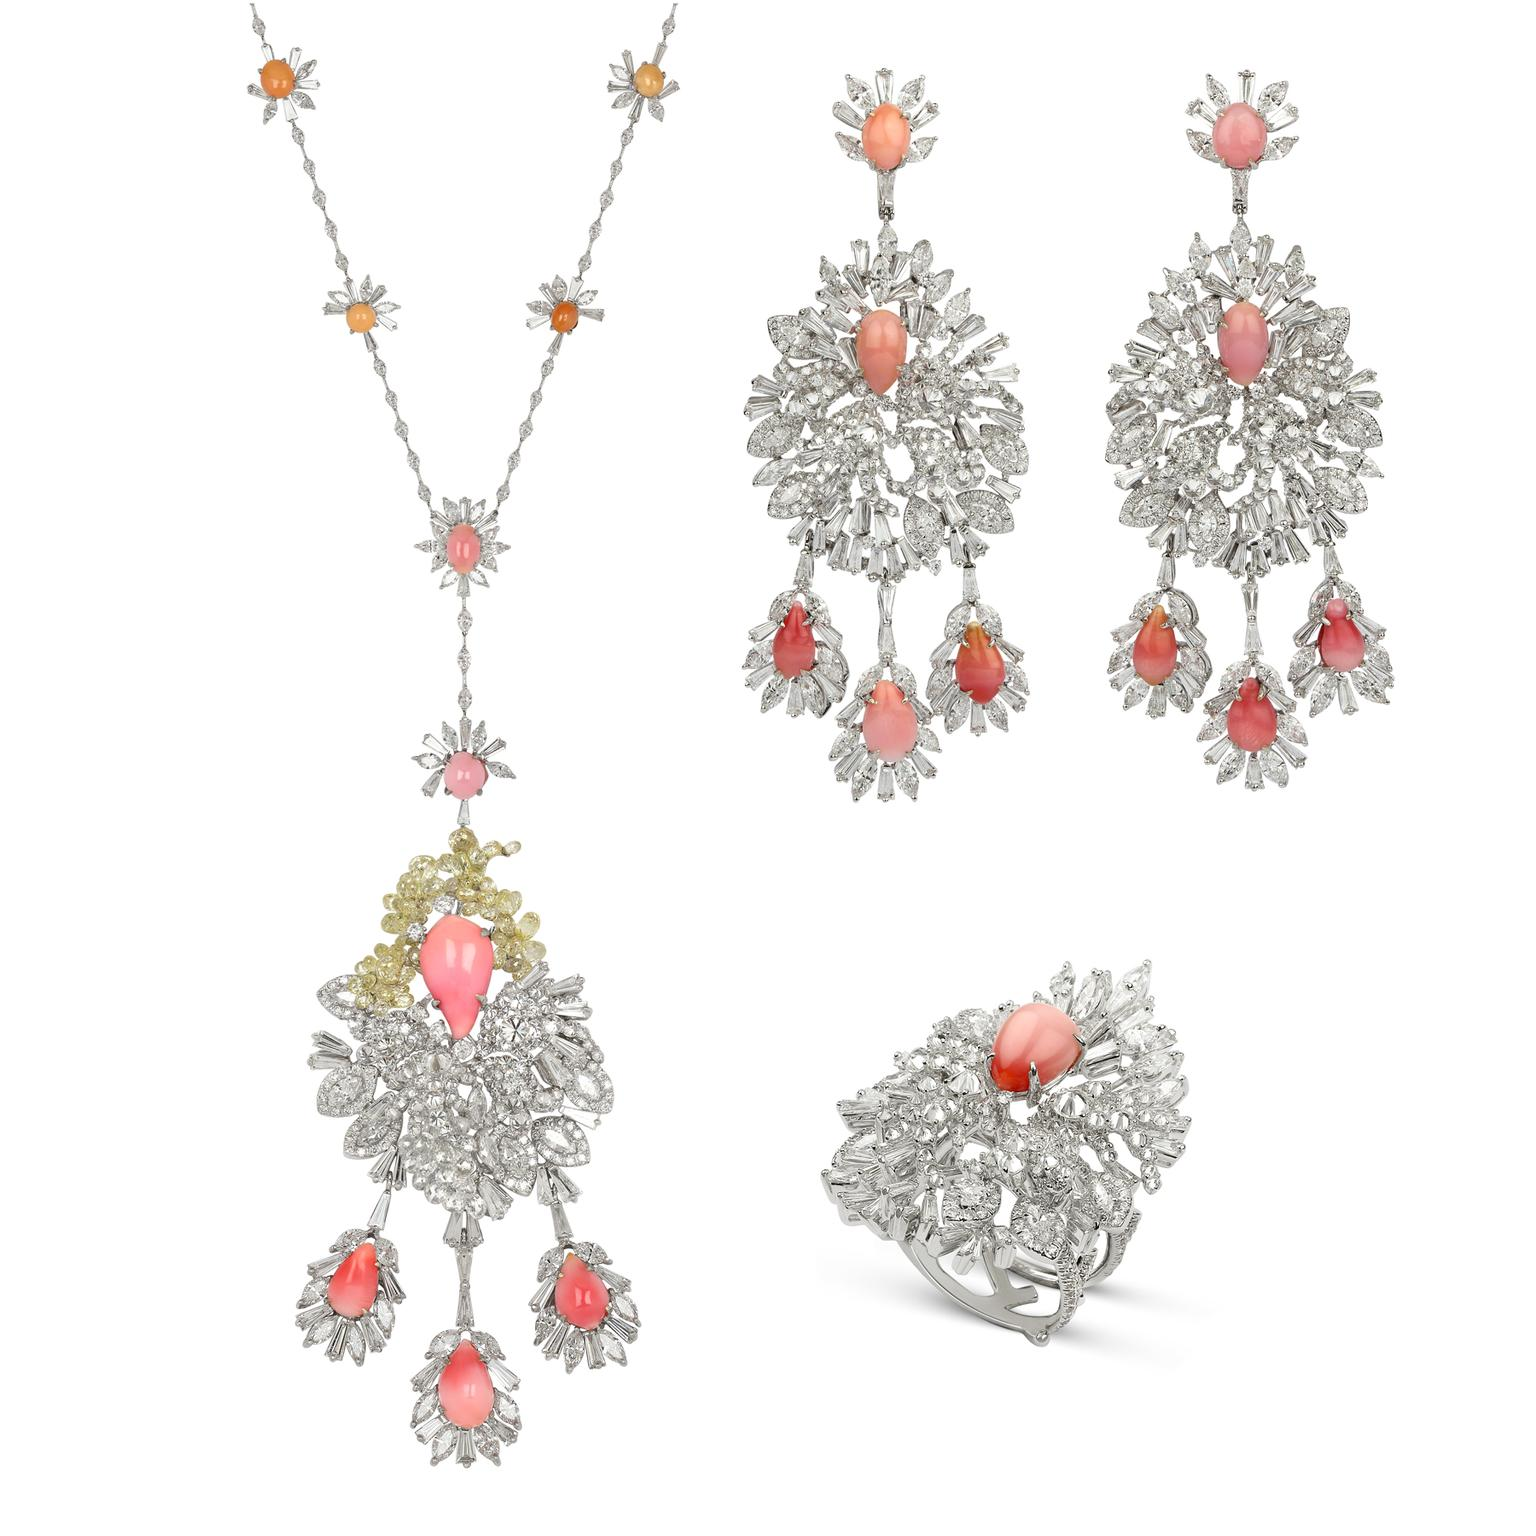 Bina Goenka Conch Pearl Necklace, Earrings And Ring Suite